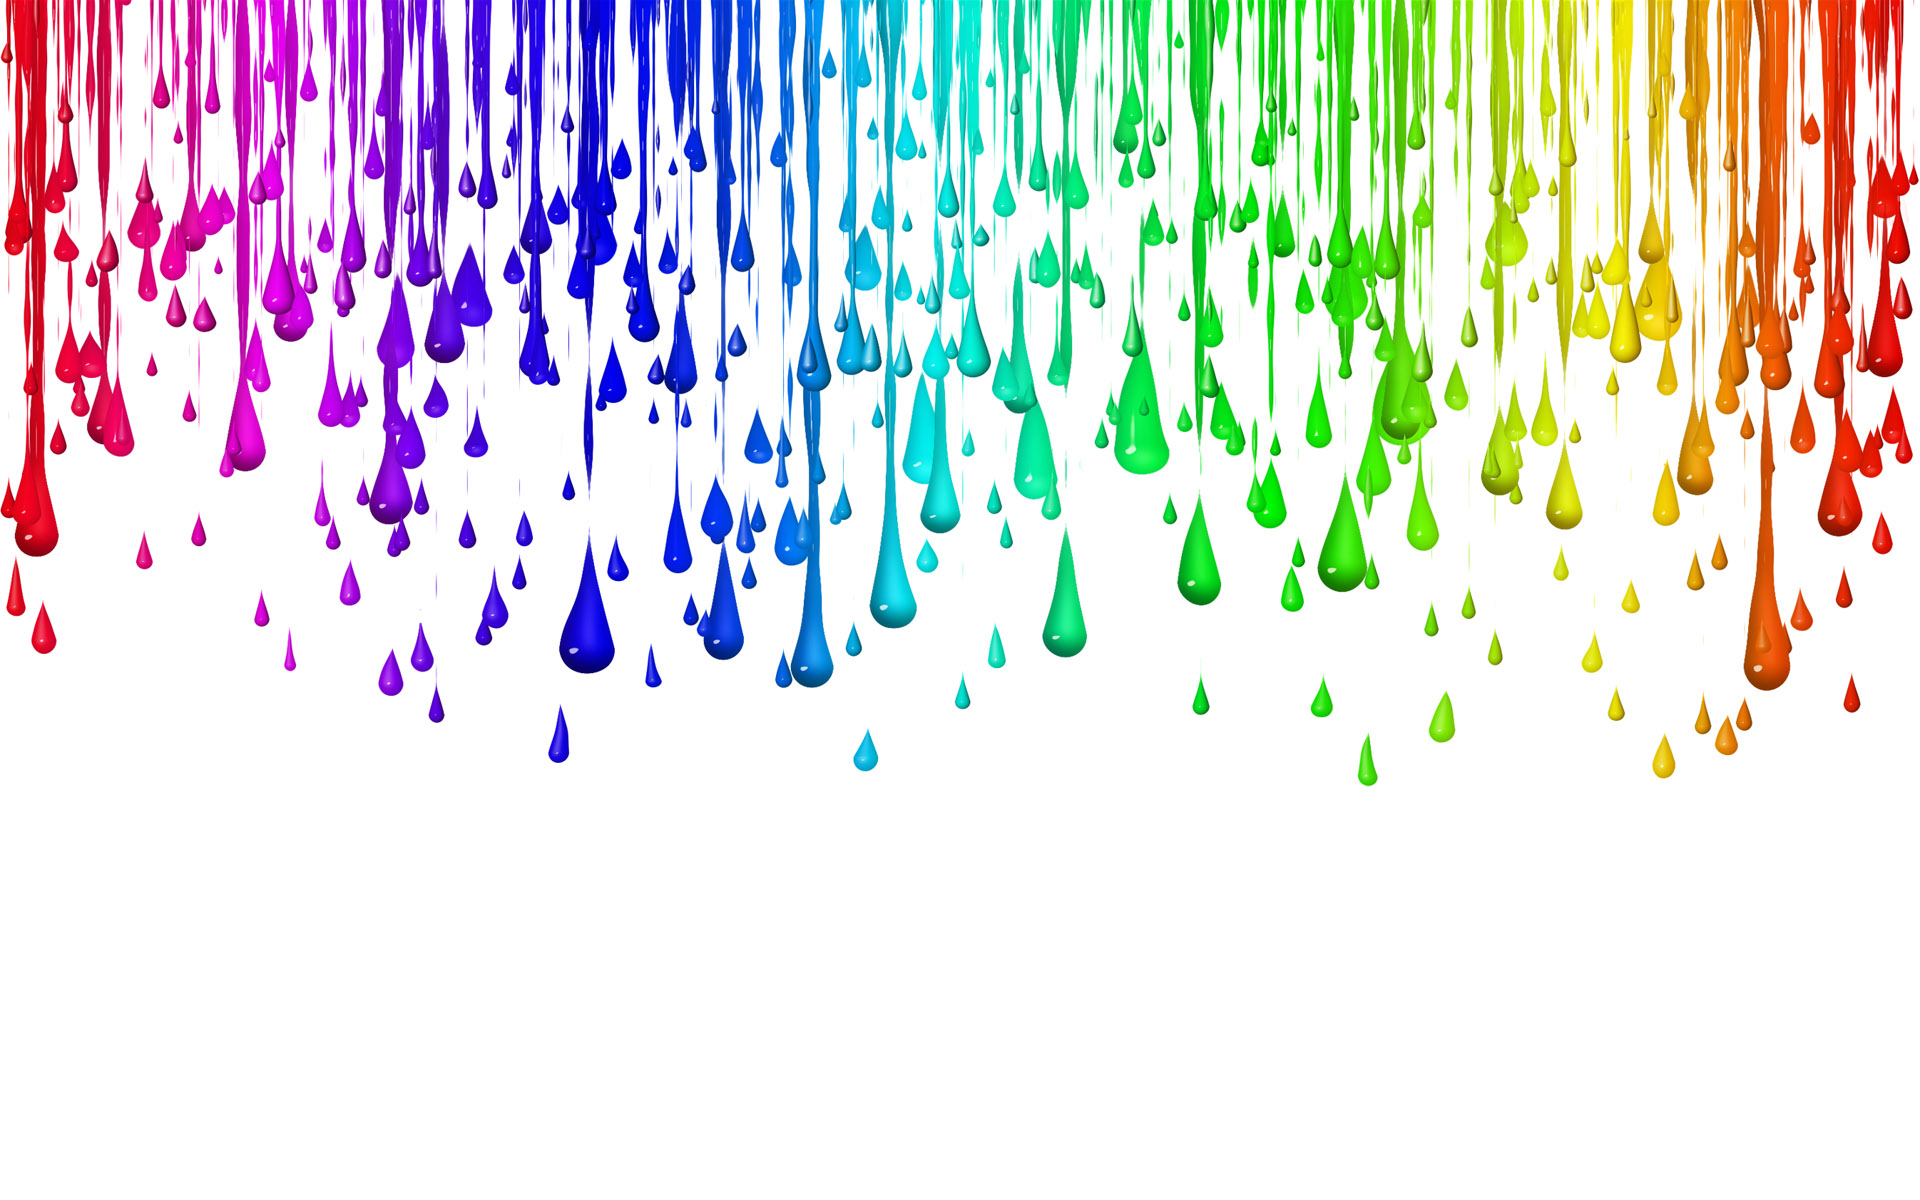 Cool Neon Splatter Paint Backgrounds HD wallpaper background 1920x1200